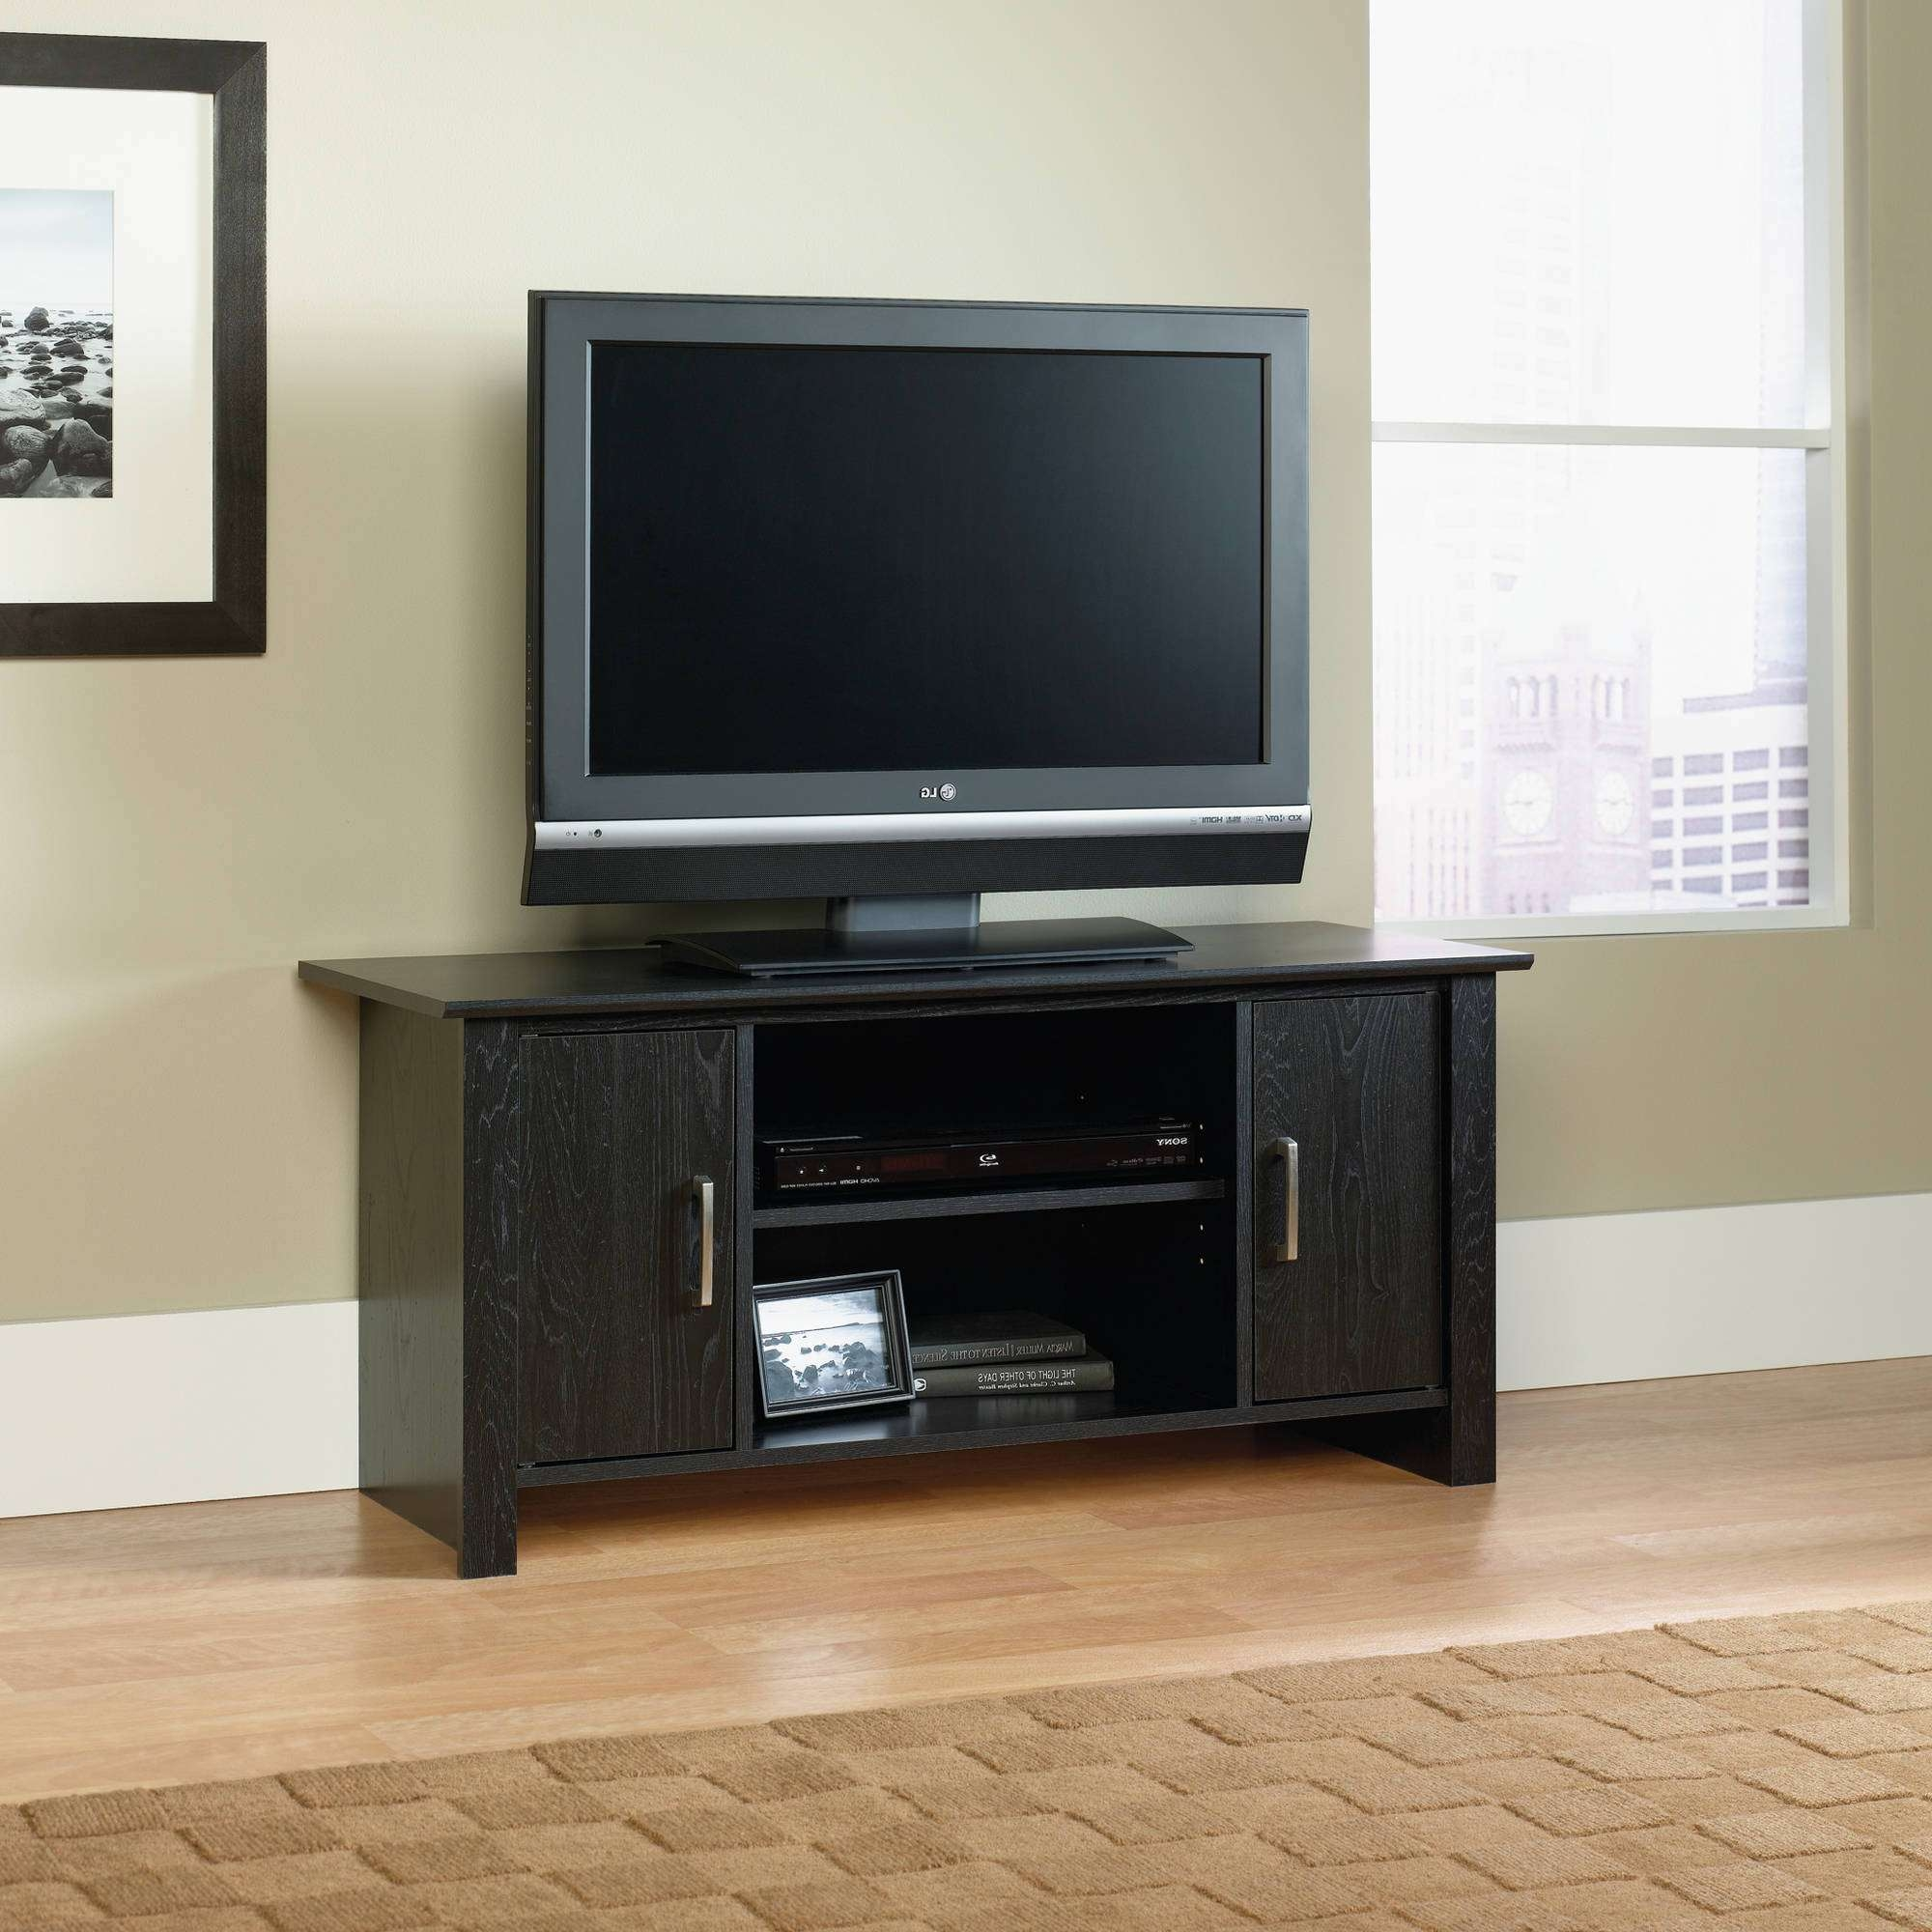 "Mainstays Tv Stand For Flat Screen Tvs Up To 47"", Multiple Finish Pertaining To Wooden Tv Stands For Flat Screens (View 7 of 15)"